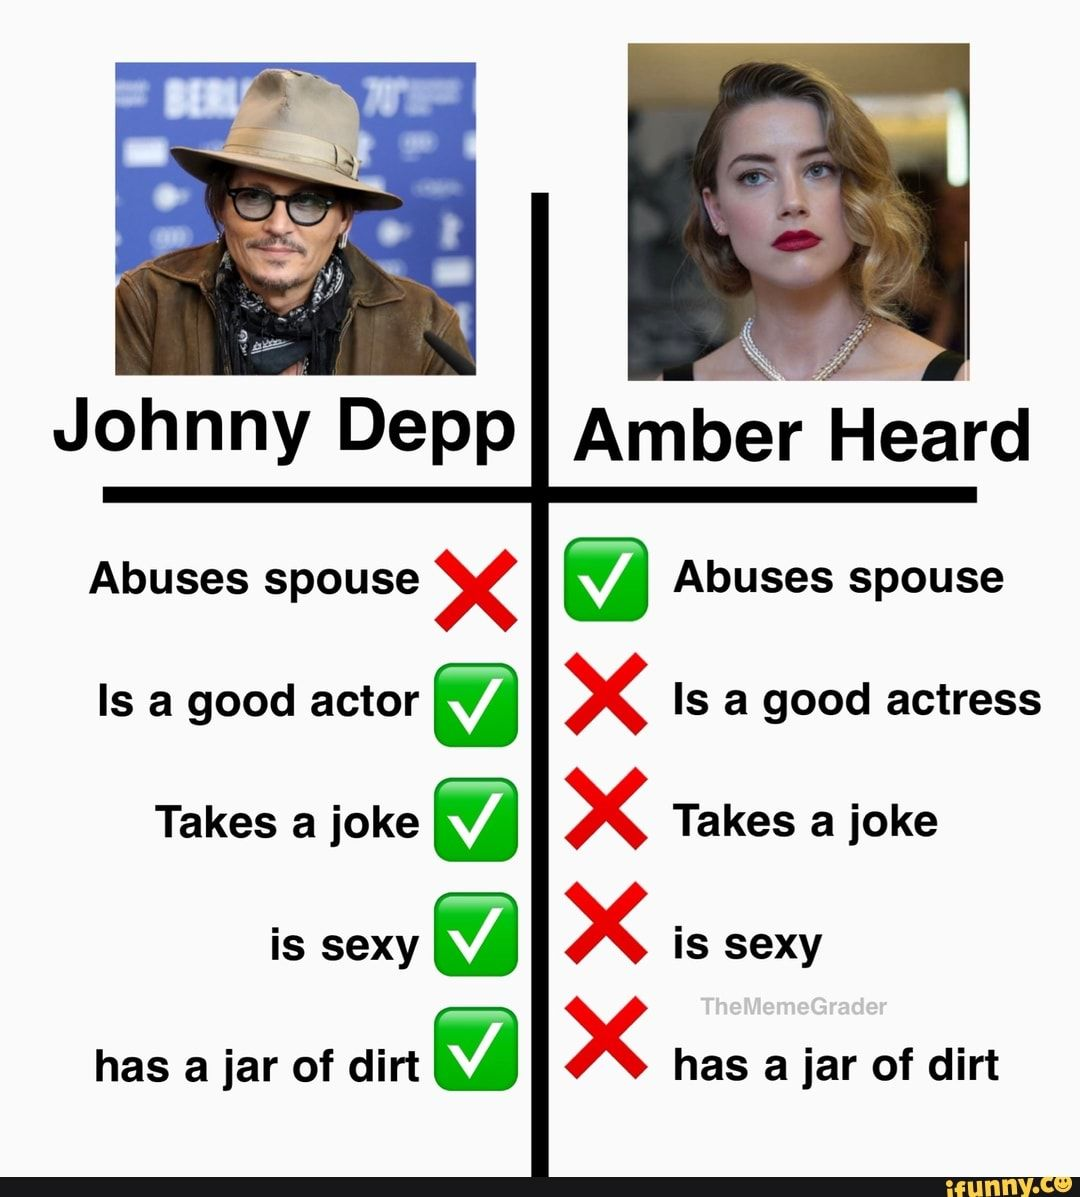 Johnny Depp Amber Heard Abuses spouse Abuses spouse Is a good actor xx Is a good actress Takes a joke Takes a joke is sexy is sexy The has a jar of dirt has a jar of dirt - )